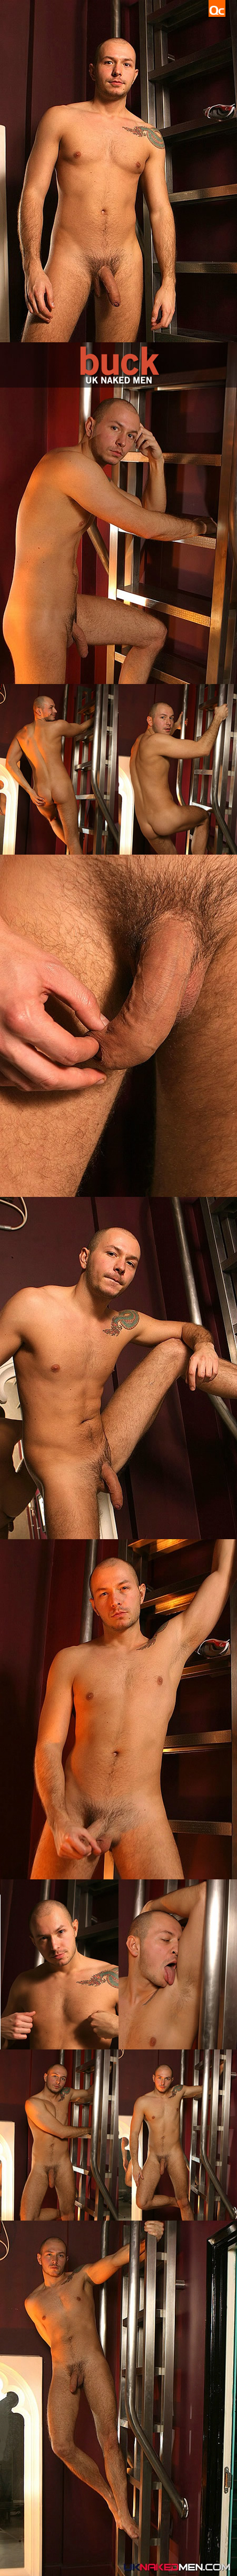 Buck at UKNakedMen.com